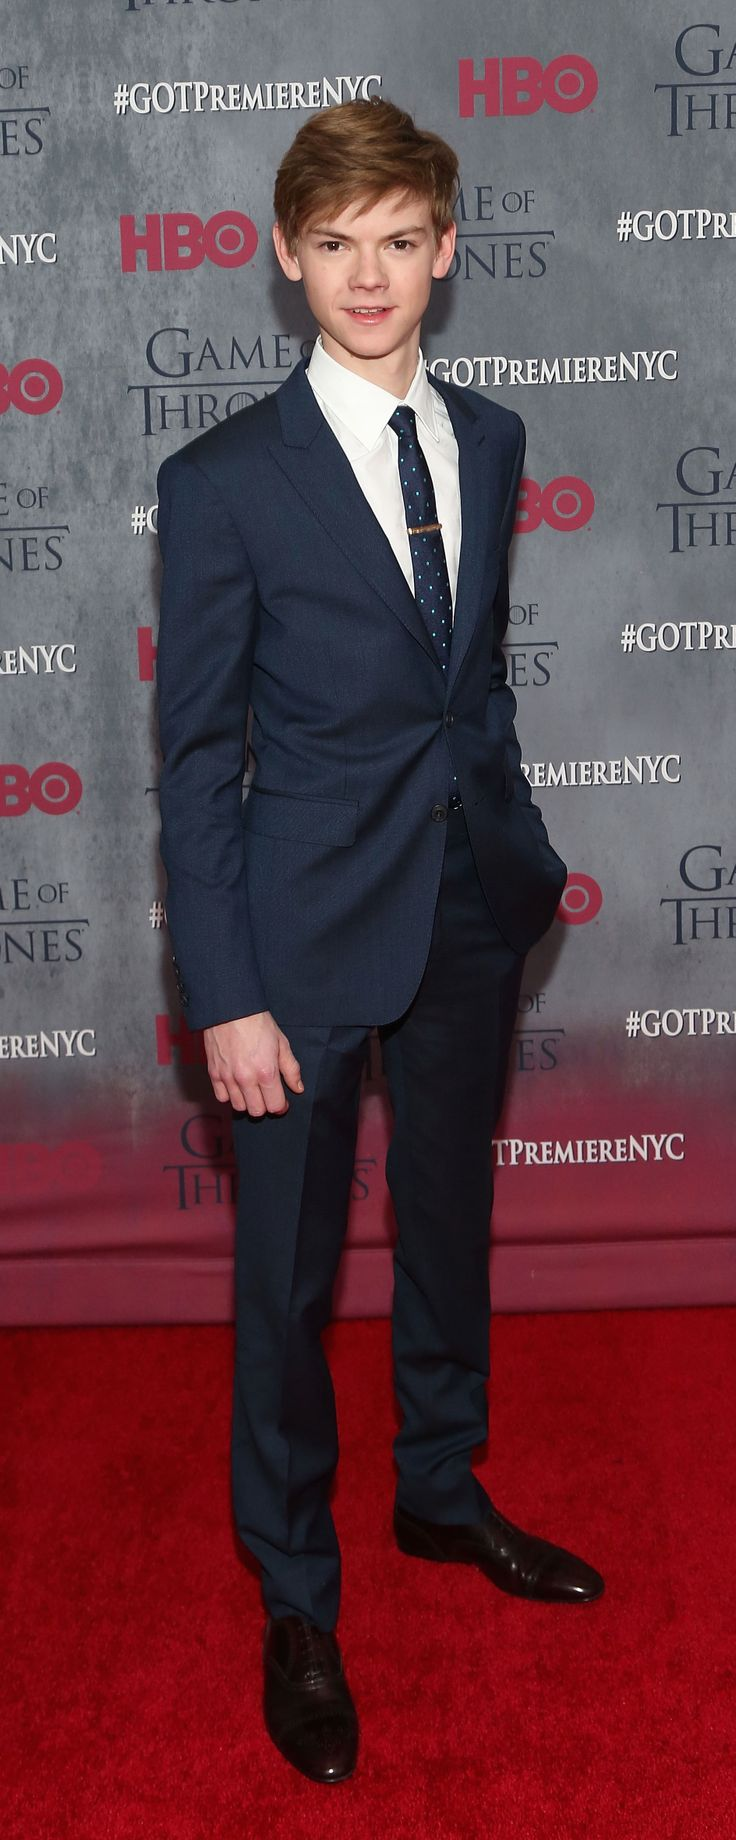 British actor Thomas Brodie-Sangster wearing Burberry tailoring to attend the Game of Thrones new season premiere in New York